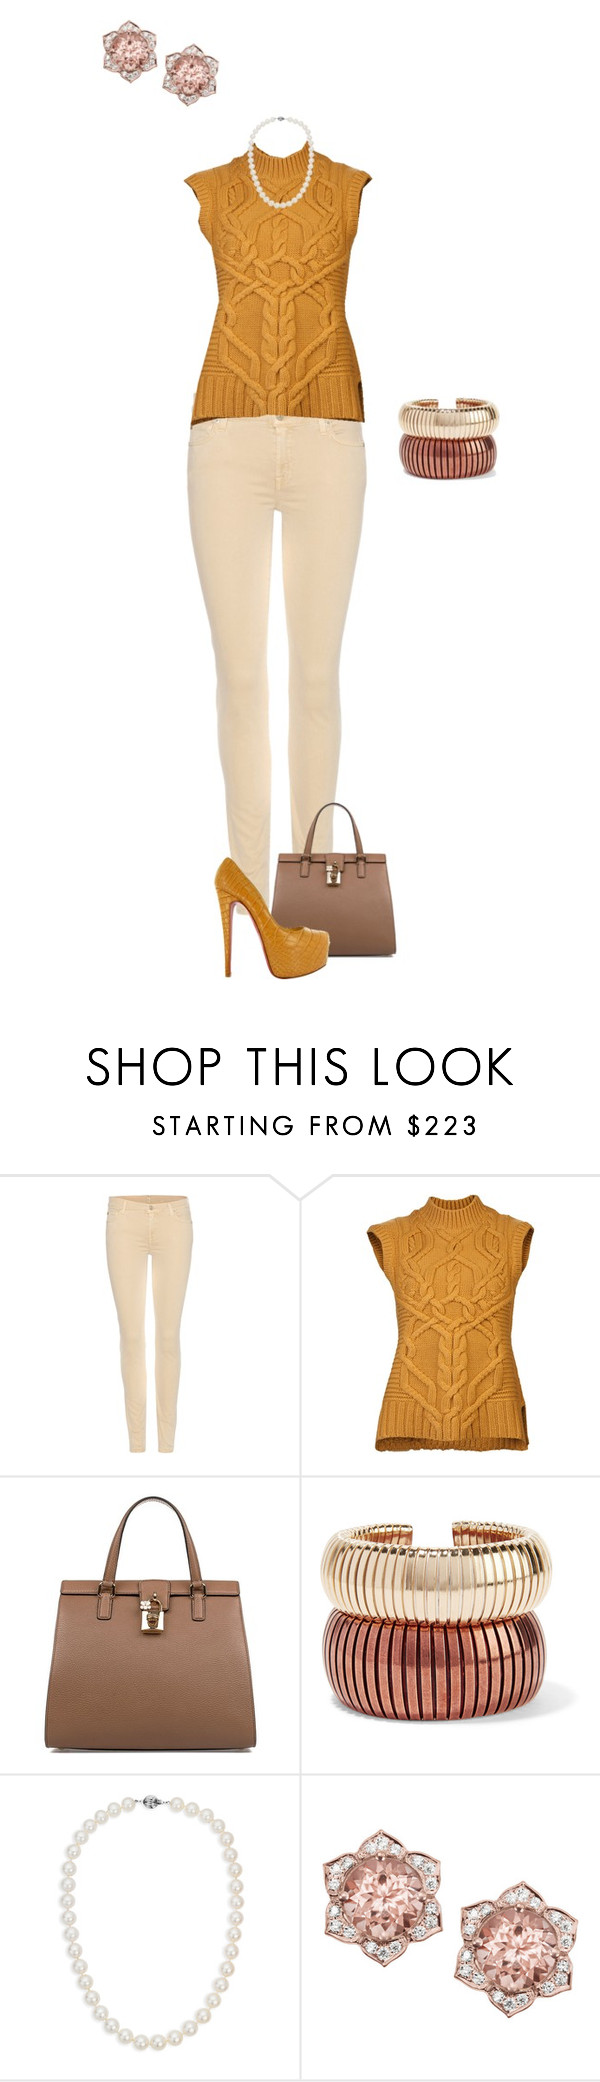 """""""Untitled #306"""" by lunajokermoon on Polyvore featuring 7 For All Mankind, Derek Lam, Dolce&Gabbana, Christian Louboutin, Rosantica and Blue Nile"""